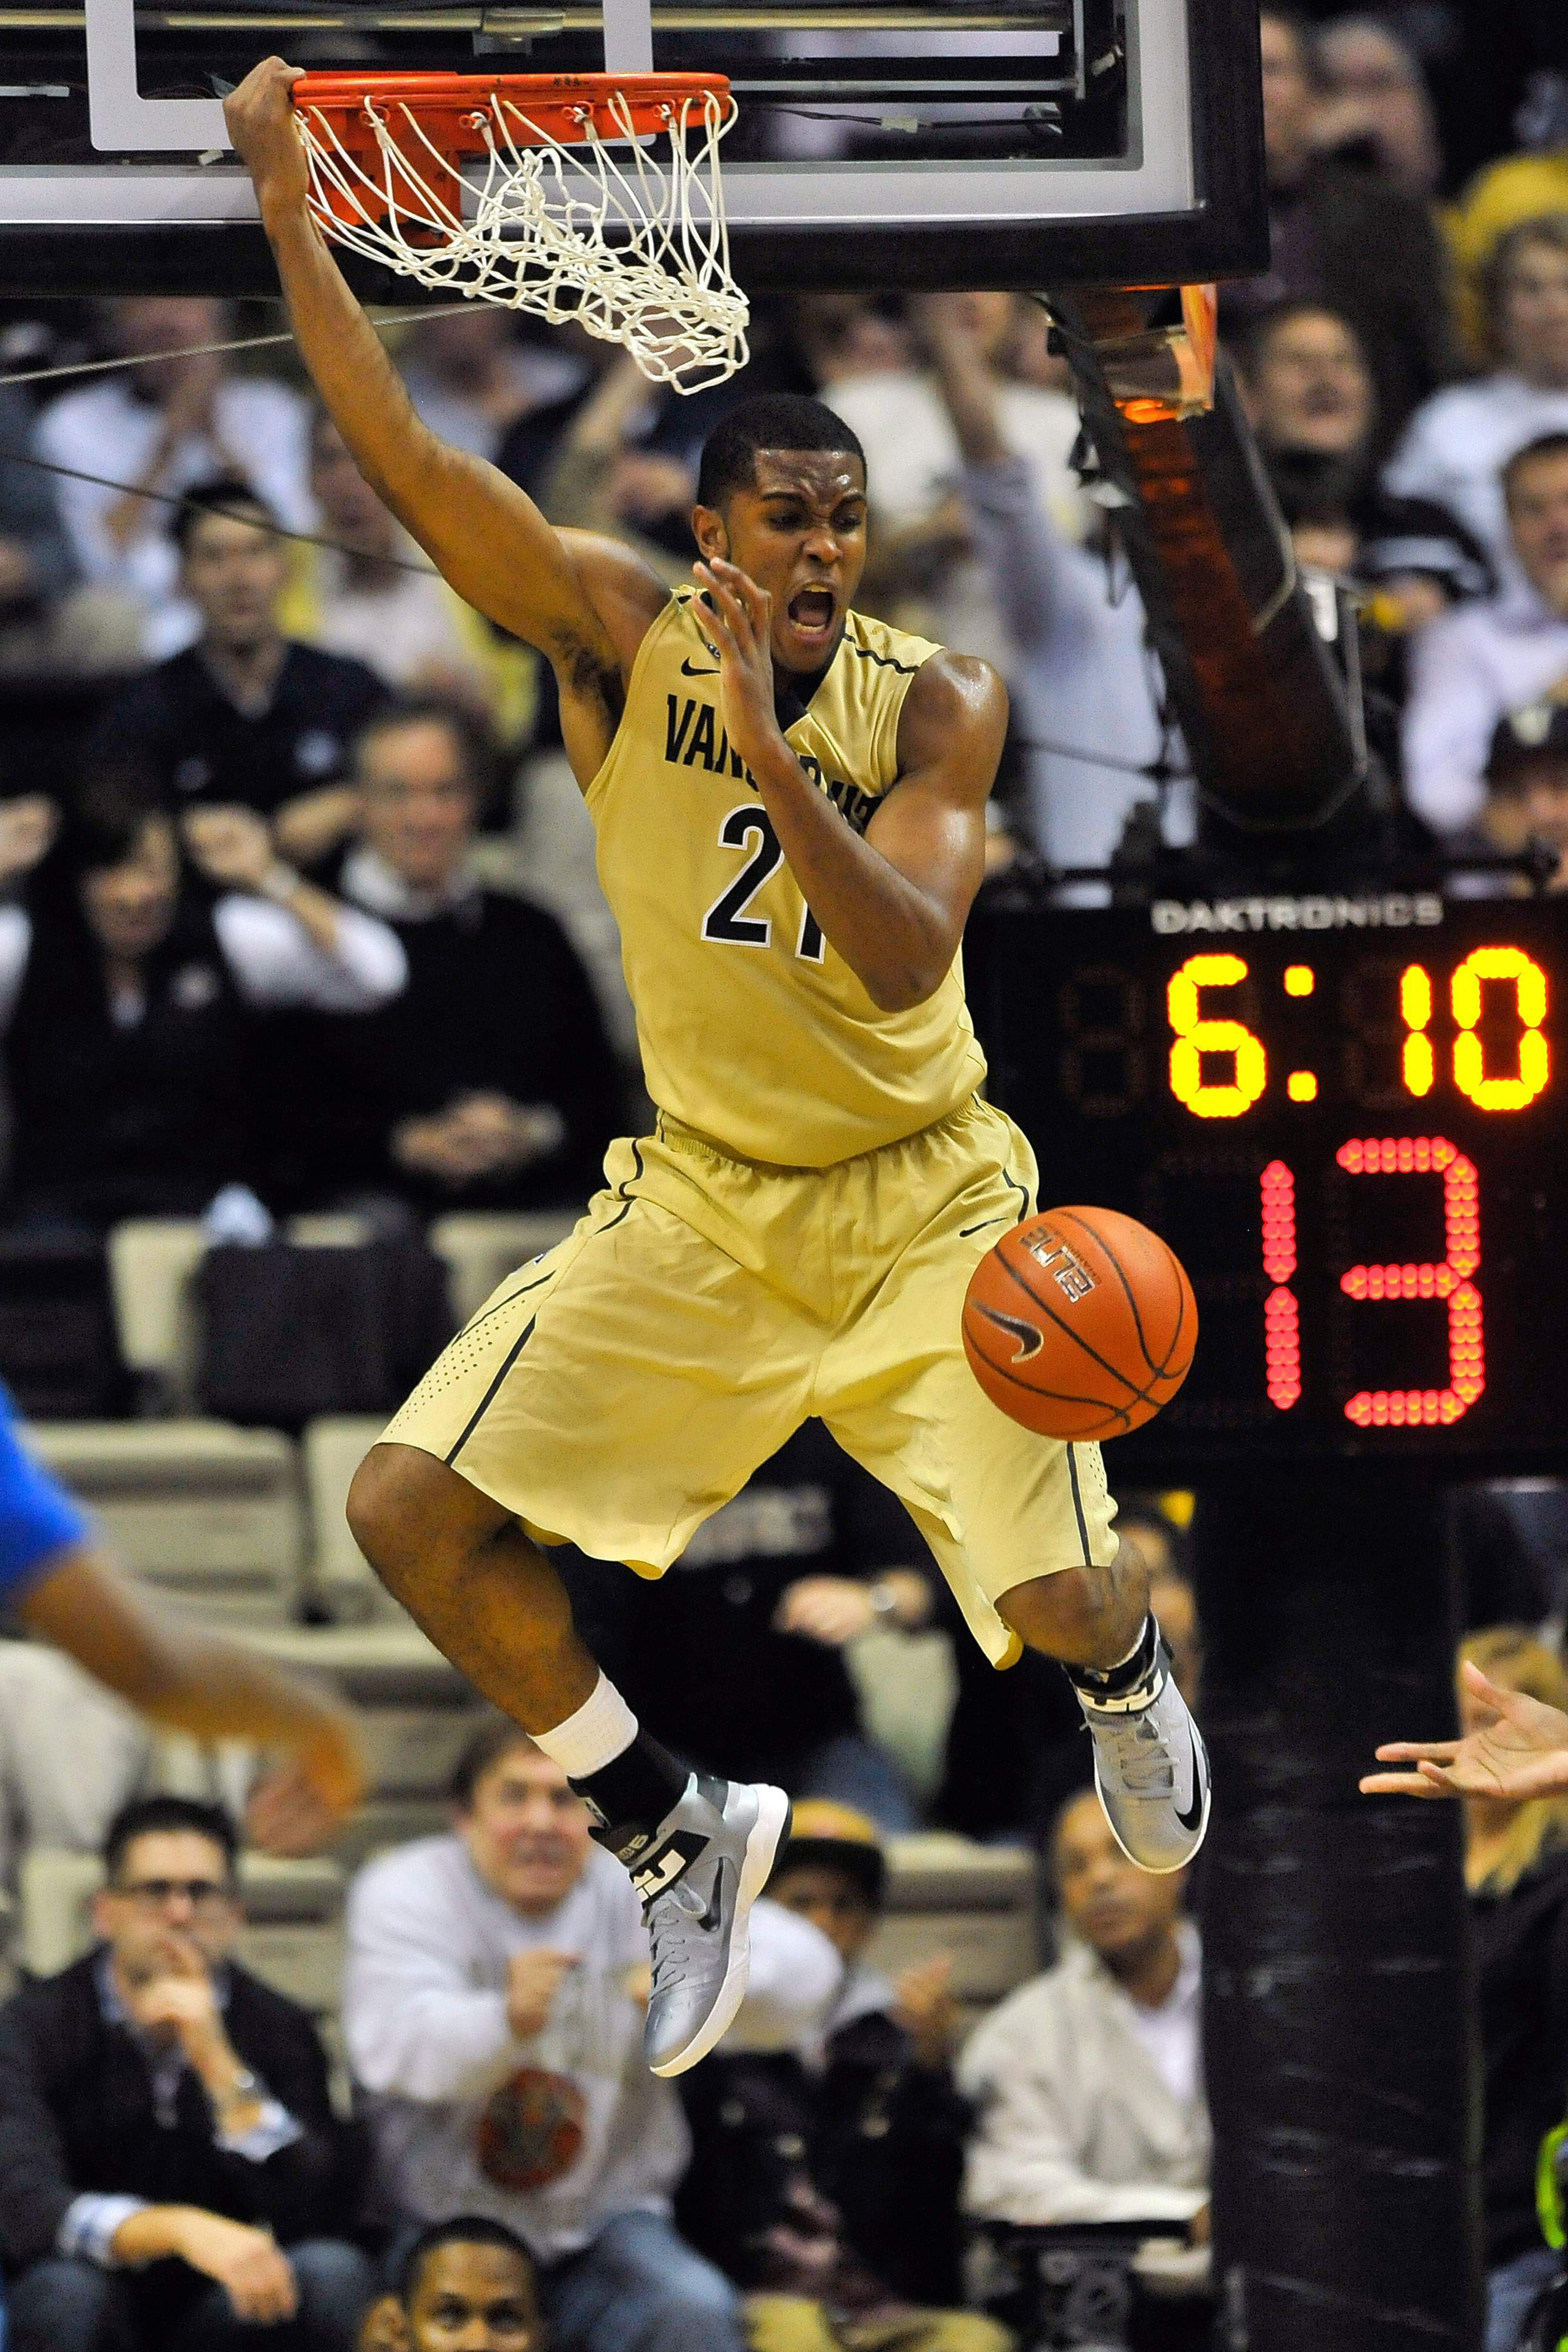 Lest we forget, Sheldon Jeter is a very good basketball player.